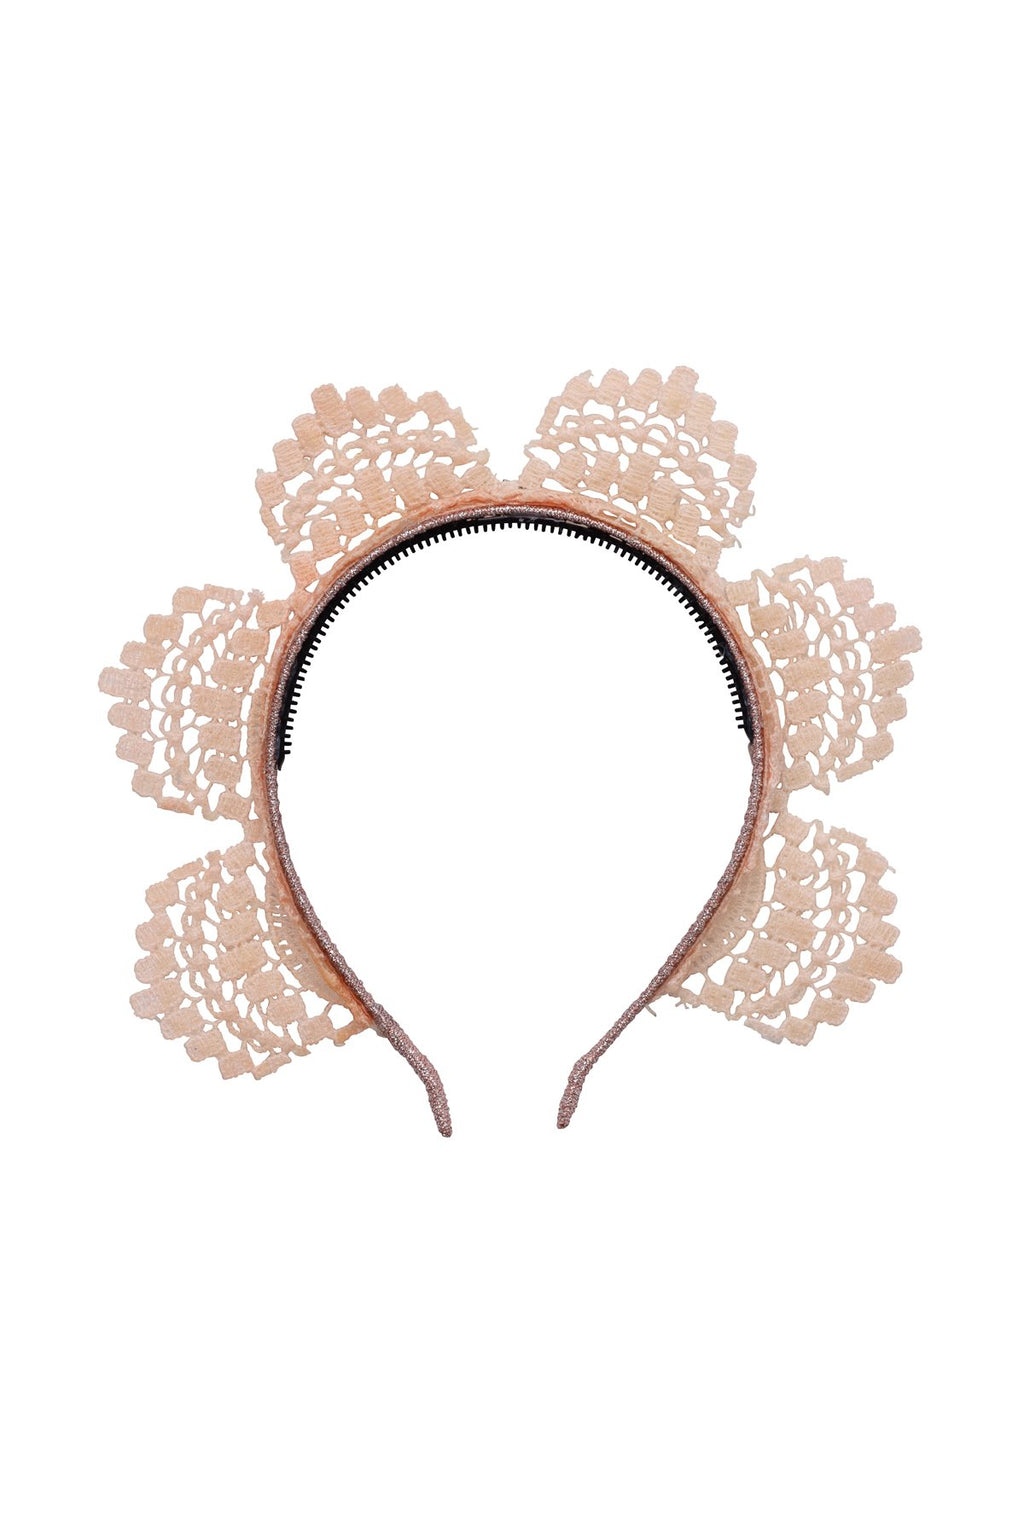 Rising Princess Headband - Blush - PROJECT 6, modest fashion